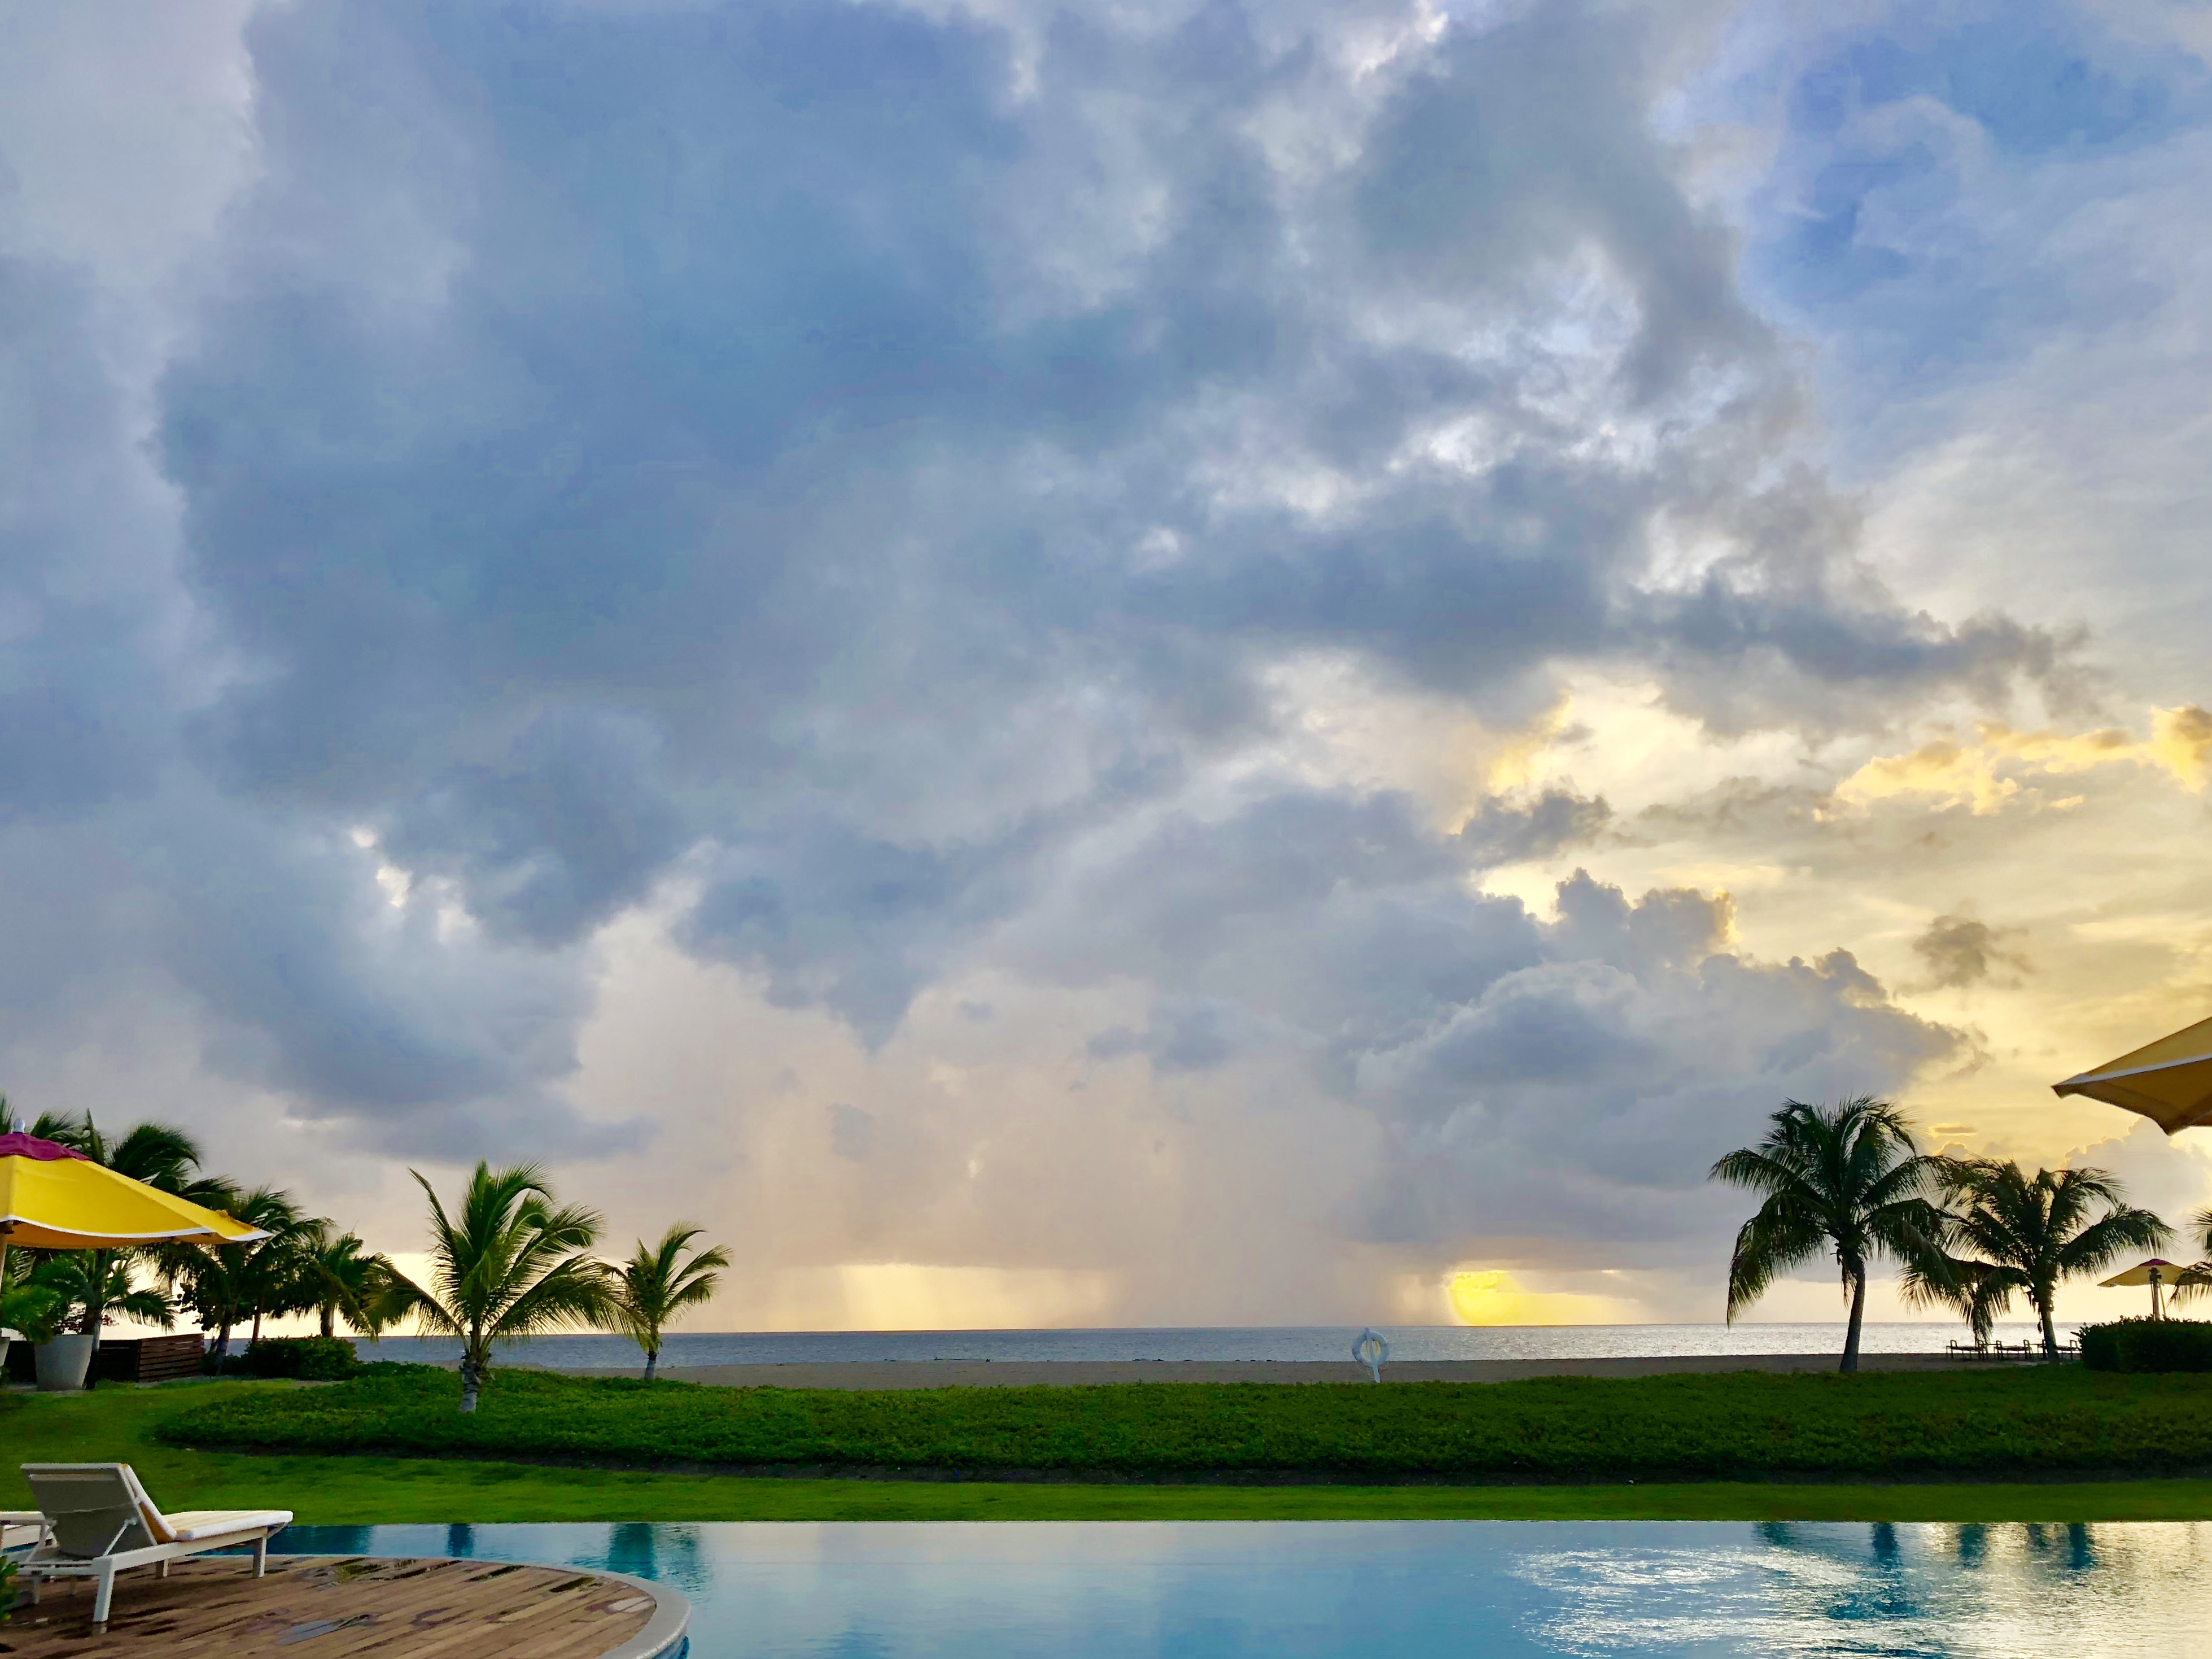 #rebekaheliztravel, travel, travel Tuesday, Nevis, four seasons, beach, pool, four seasons Nevis